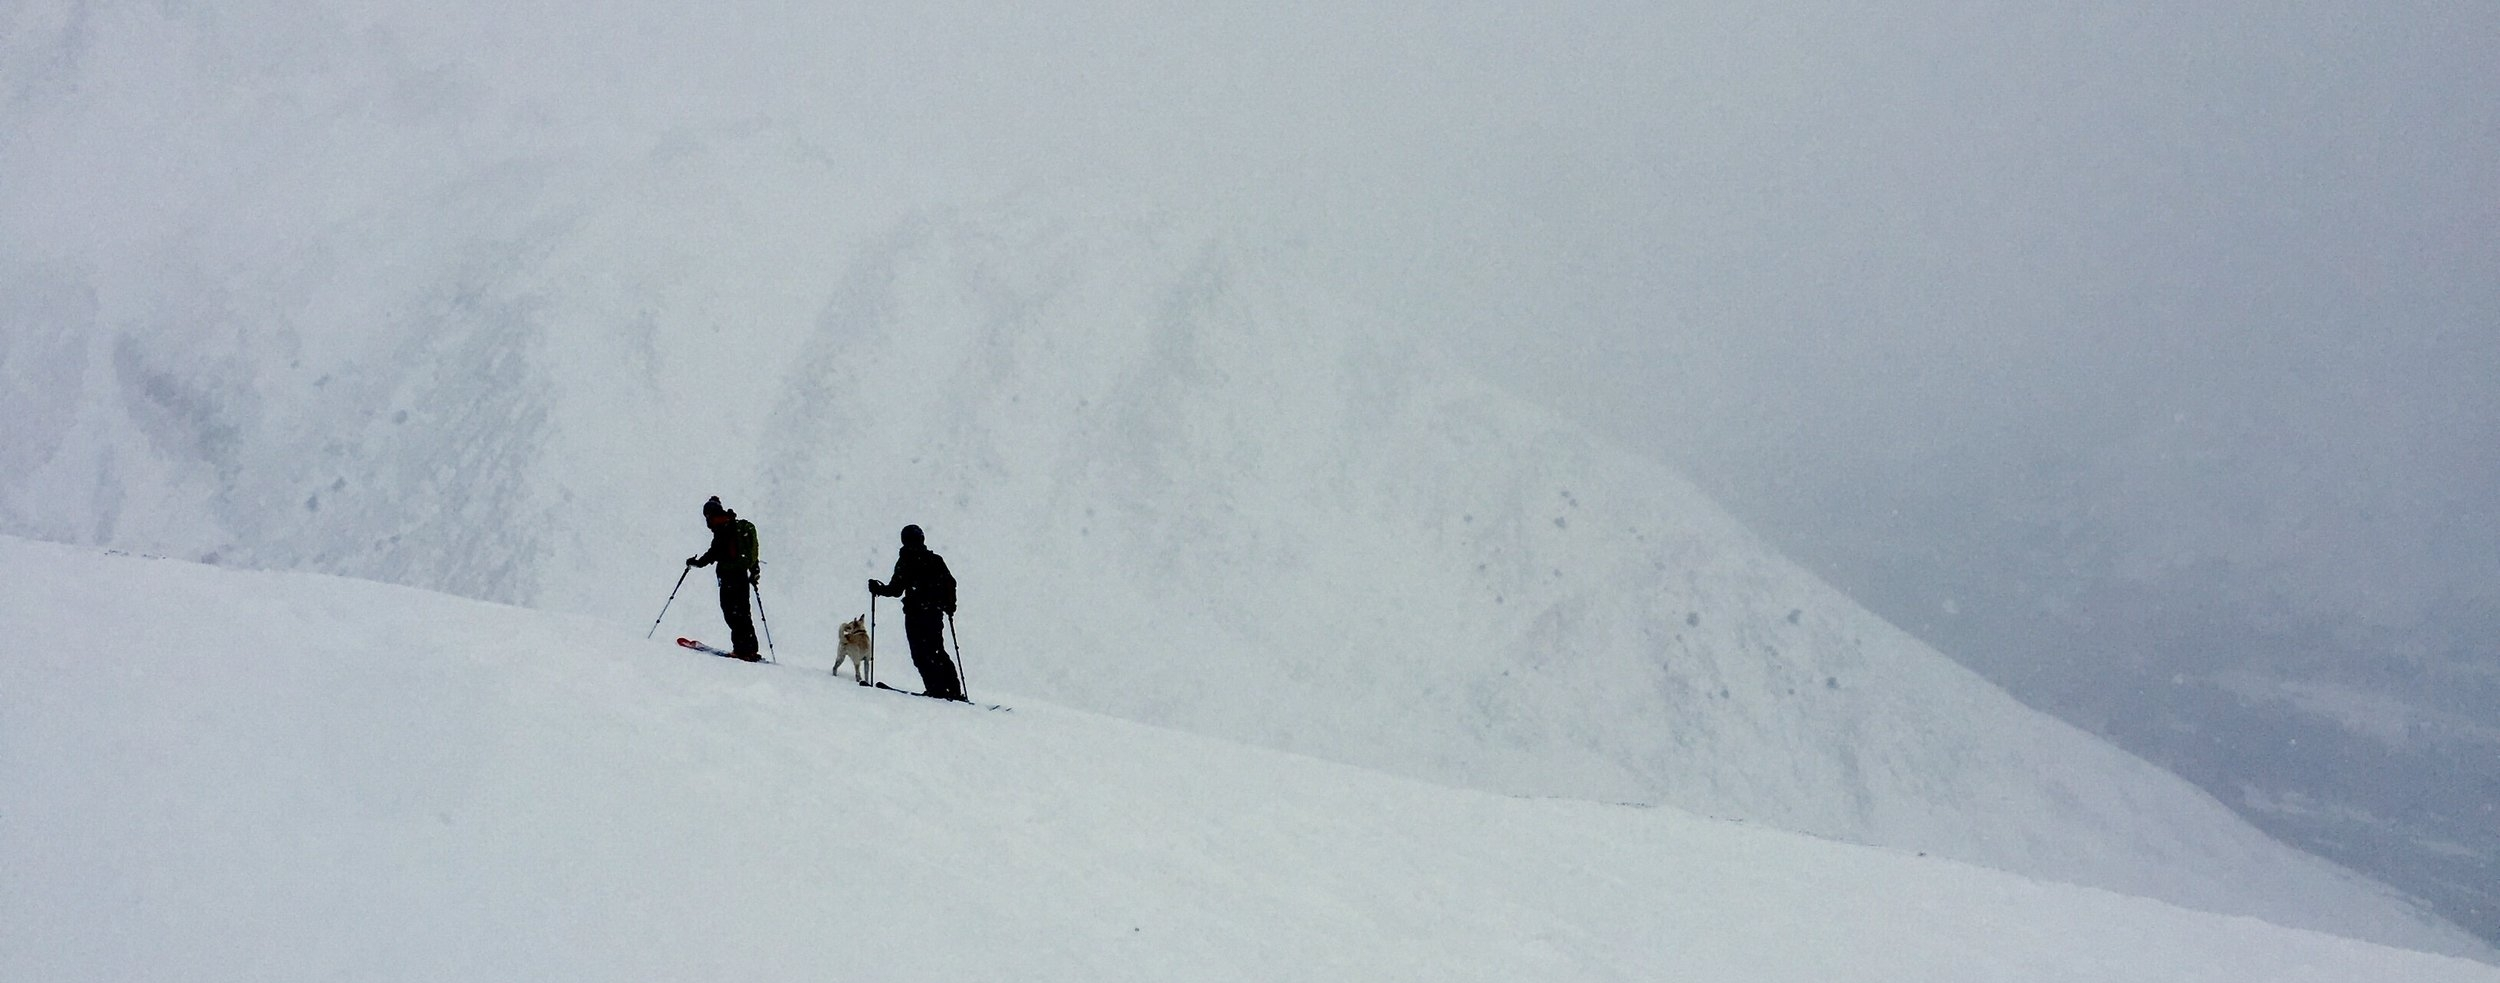 Enjoying a cloudy climb for some epic skiing. Shiro loves skiing almost at much as I do.